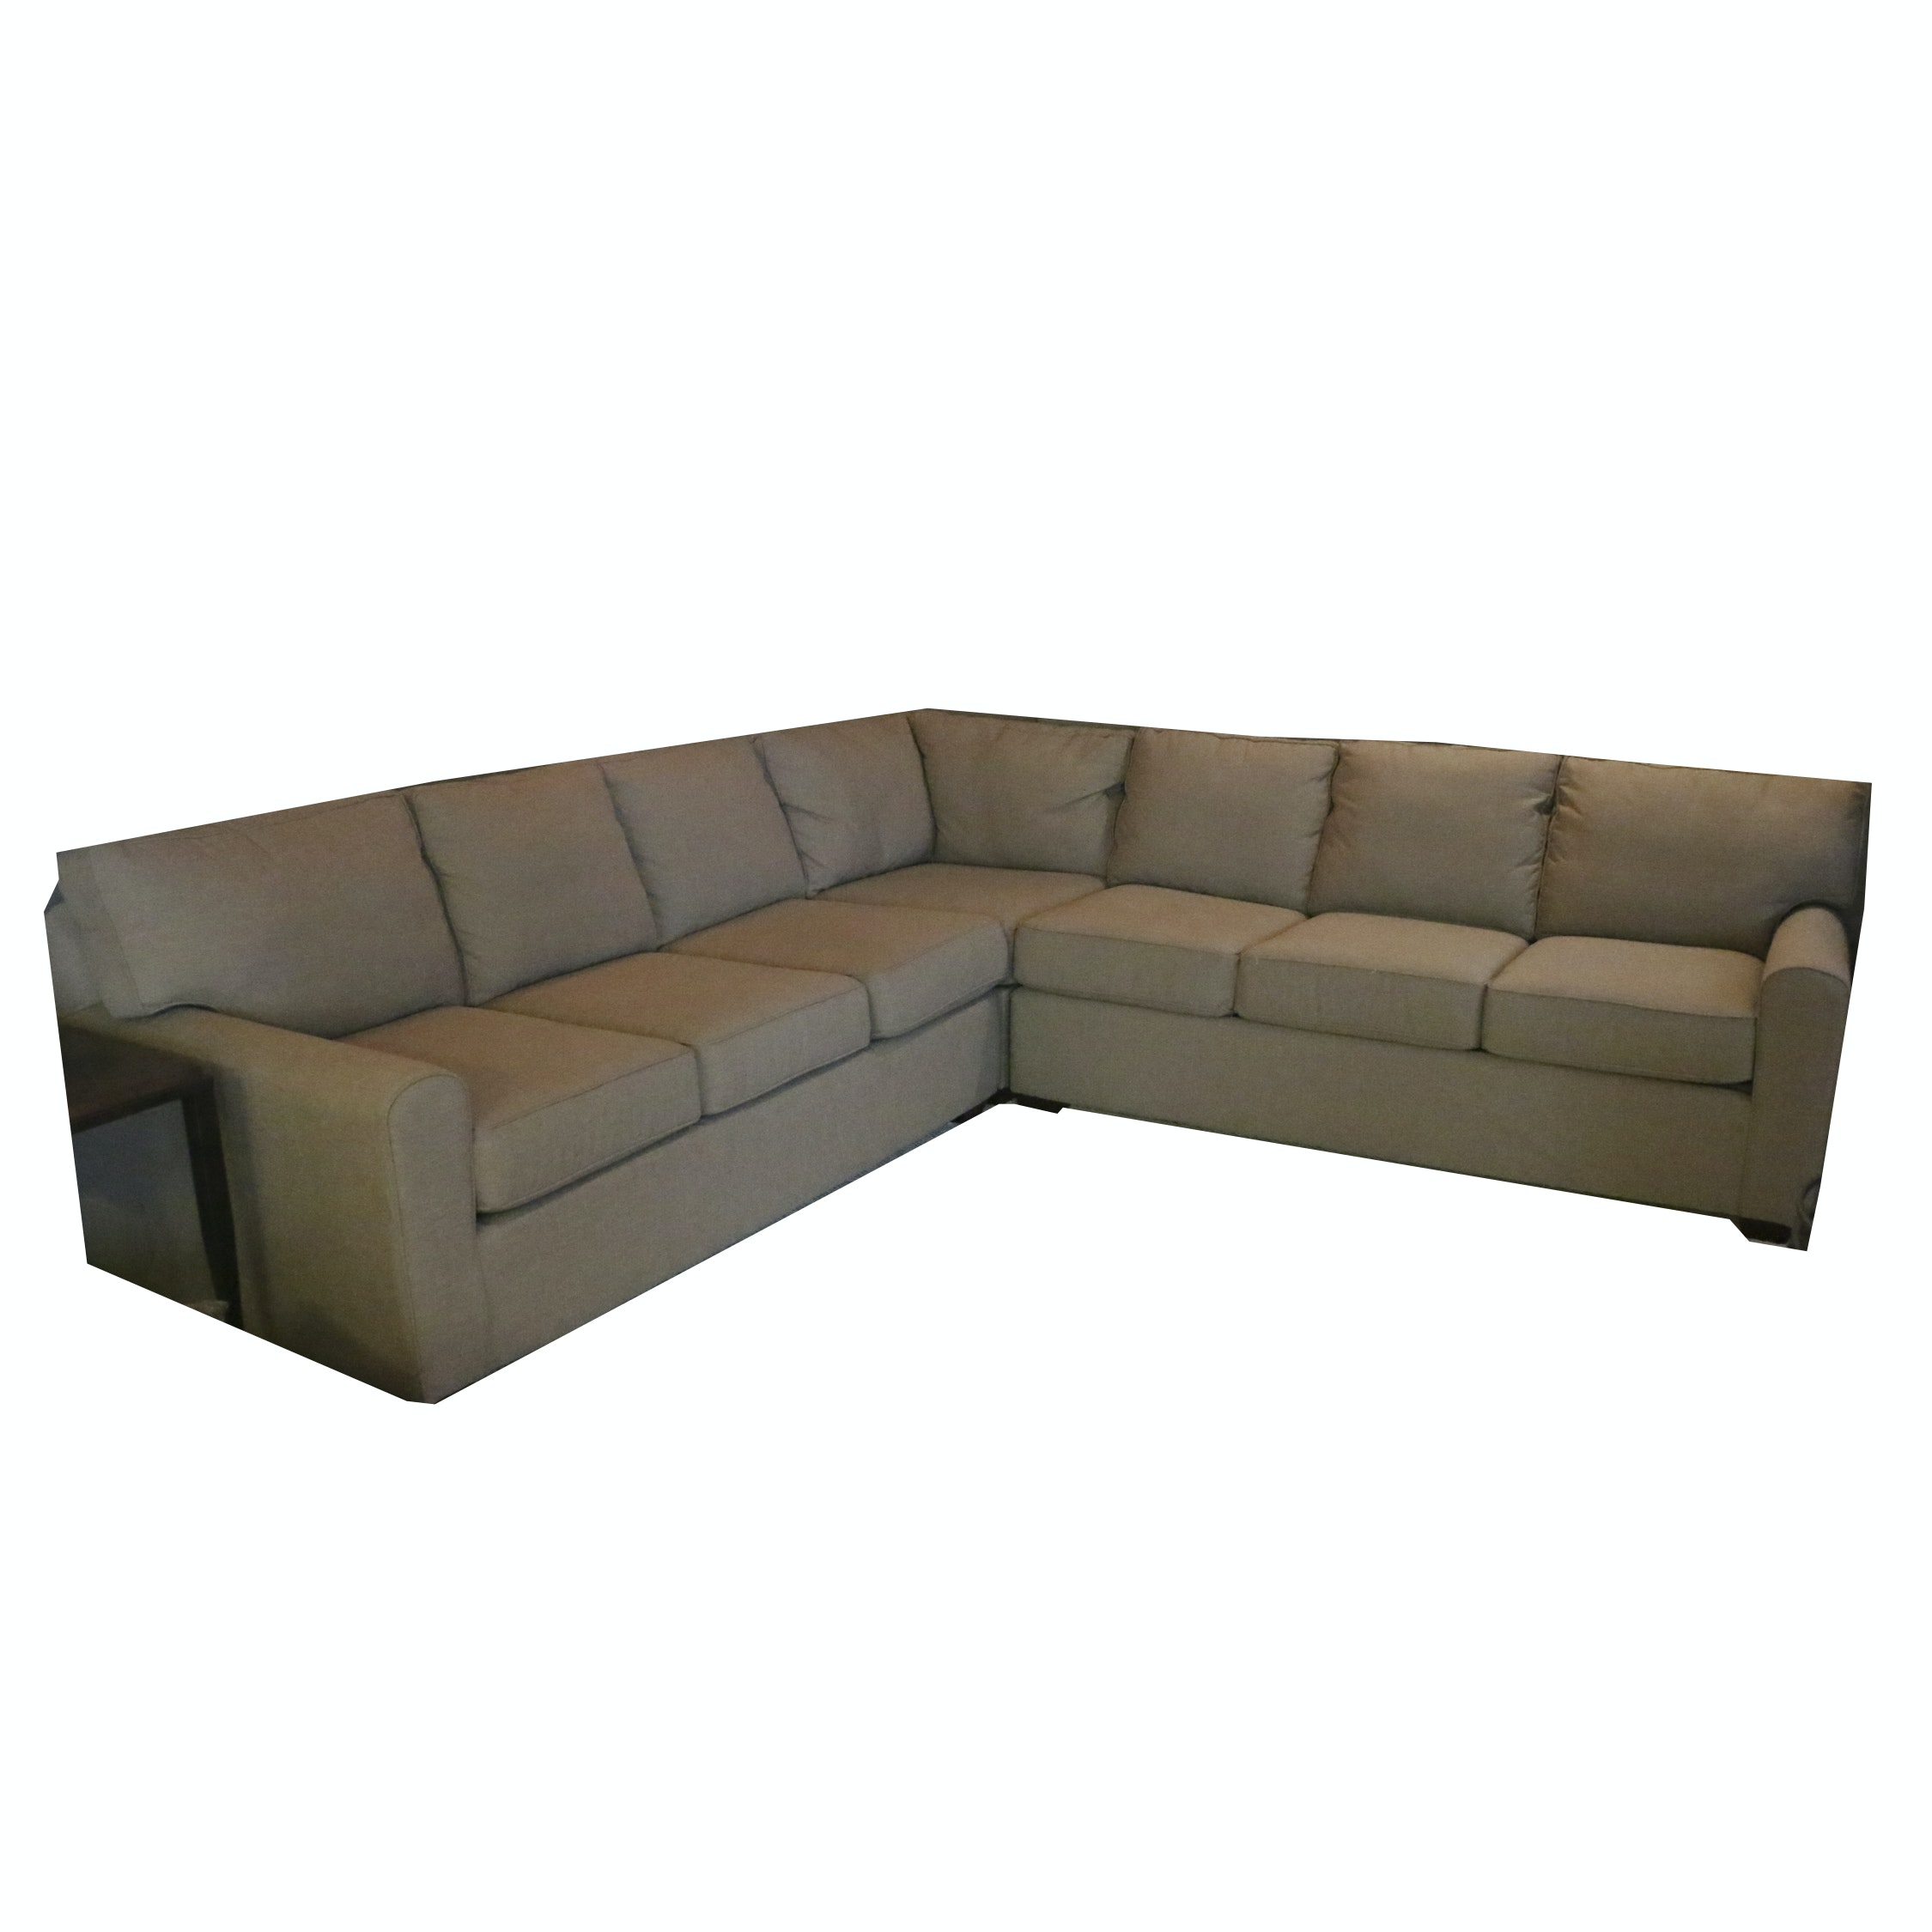 Upholstered Sectional Sofa, 21st Century